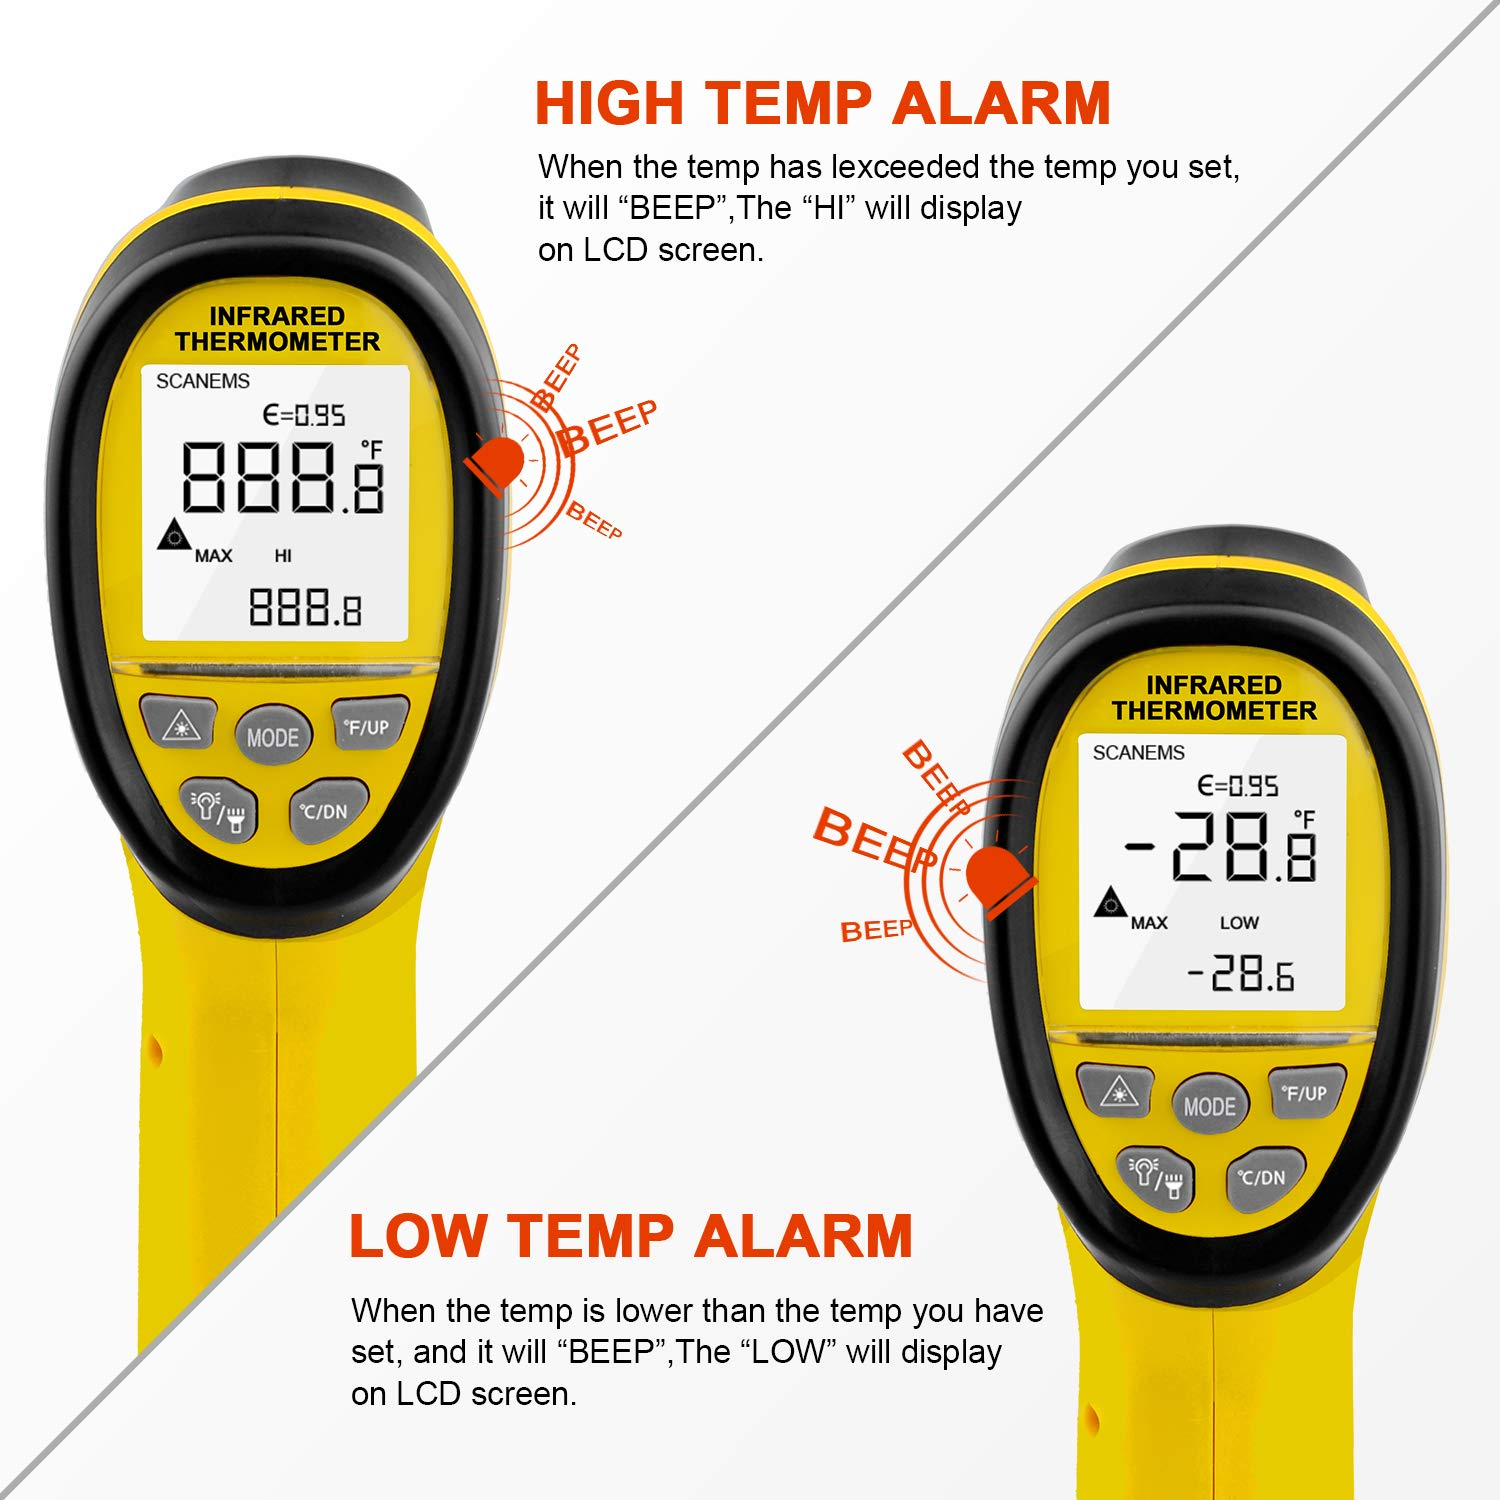 HOLDPEAK 985B Digital Infrared Thermometer Dual Laser Thermometer Non-Contact Temperature Gun -58℉~2480℉ (-50℃~1360℃) with Data Hold & Adjustable Emissivity for Forge Melting Furnace Kilns Industry by H HOLDPEAK (Image #4)